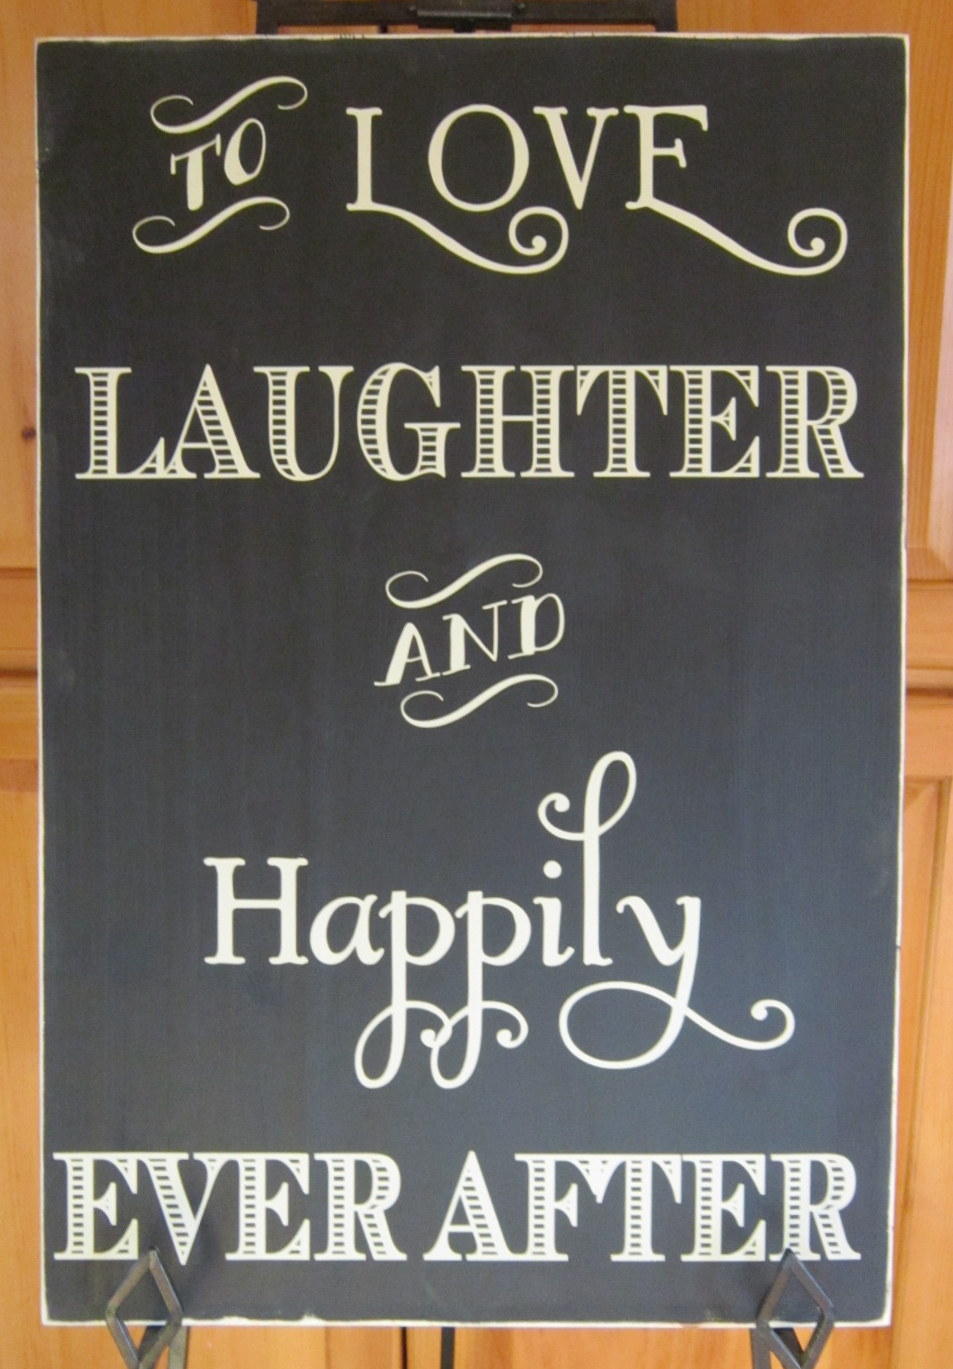 To love laughter